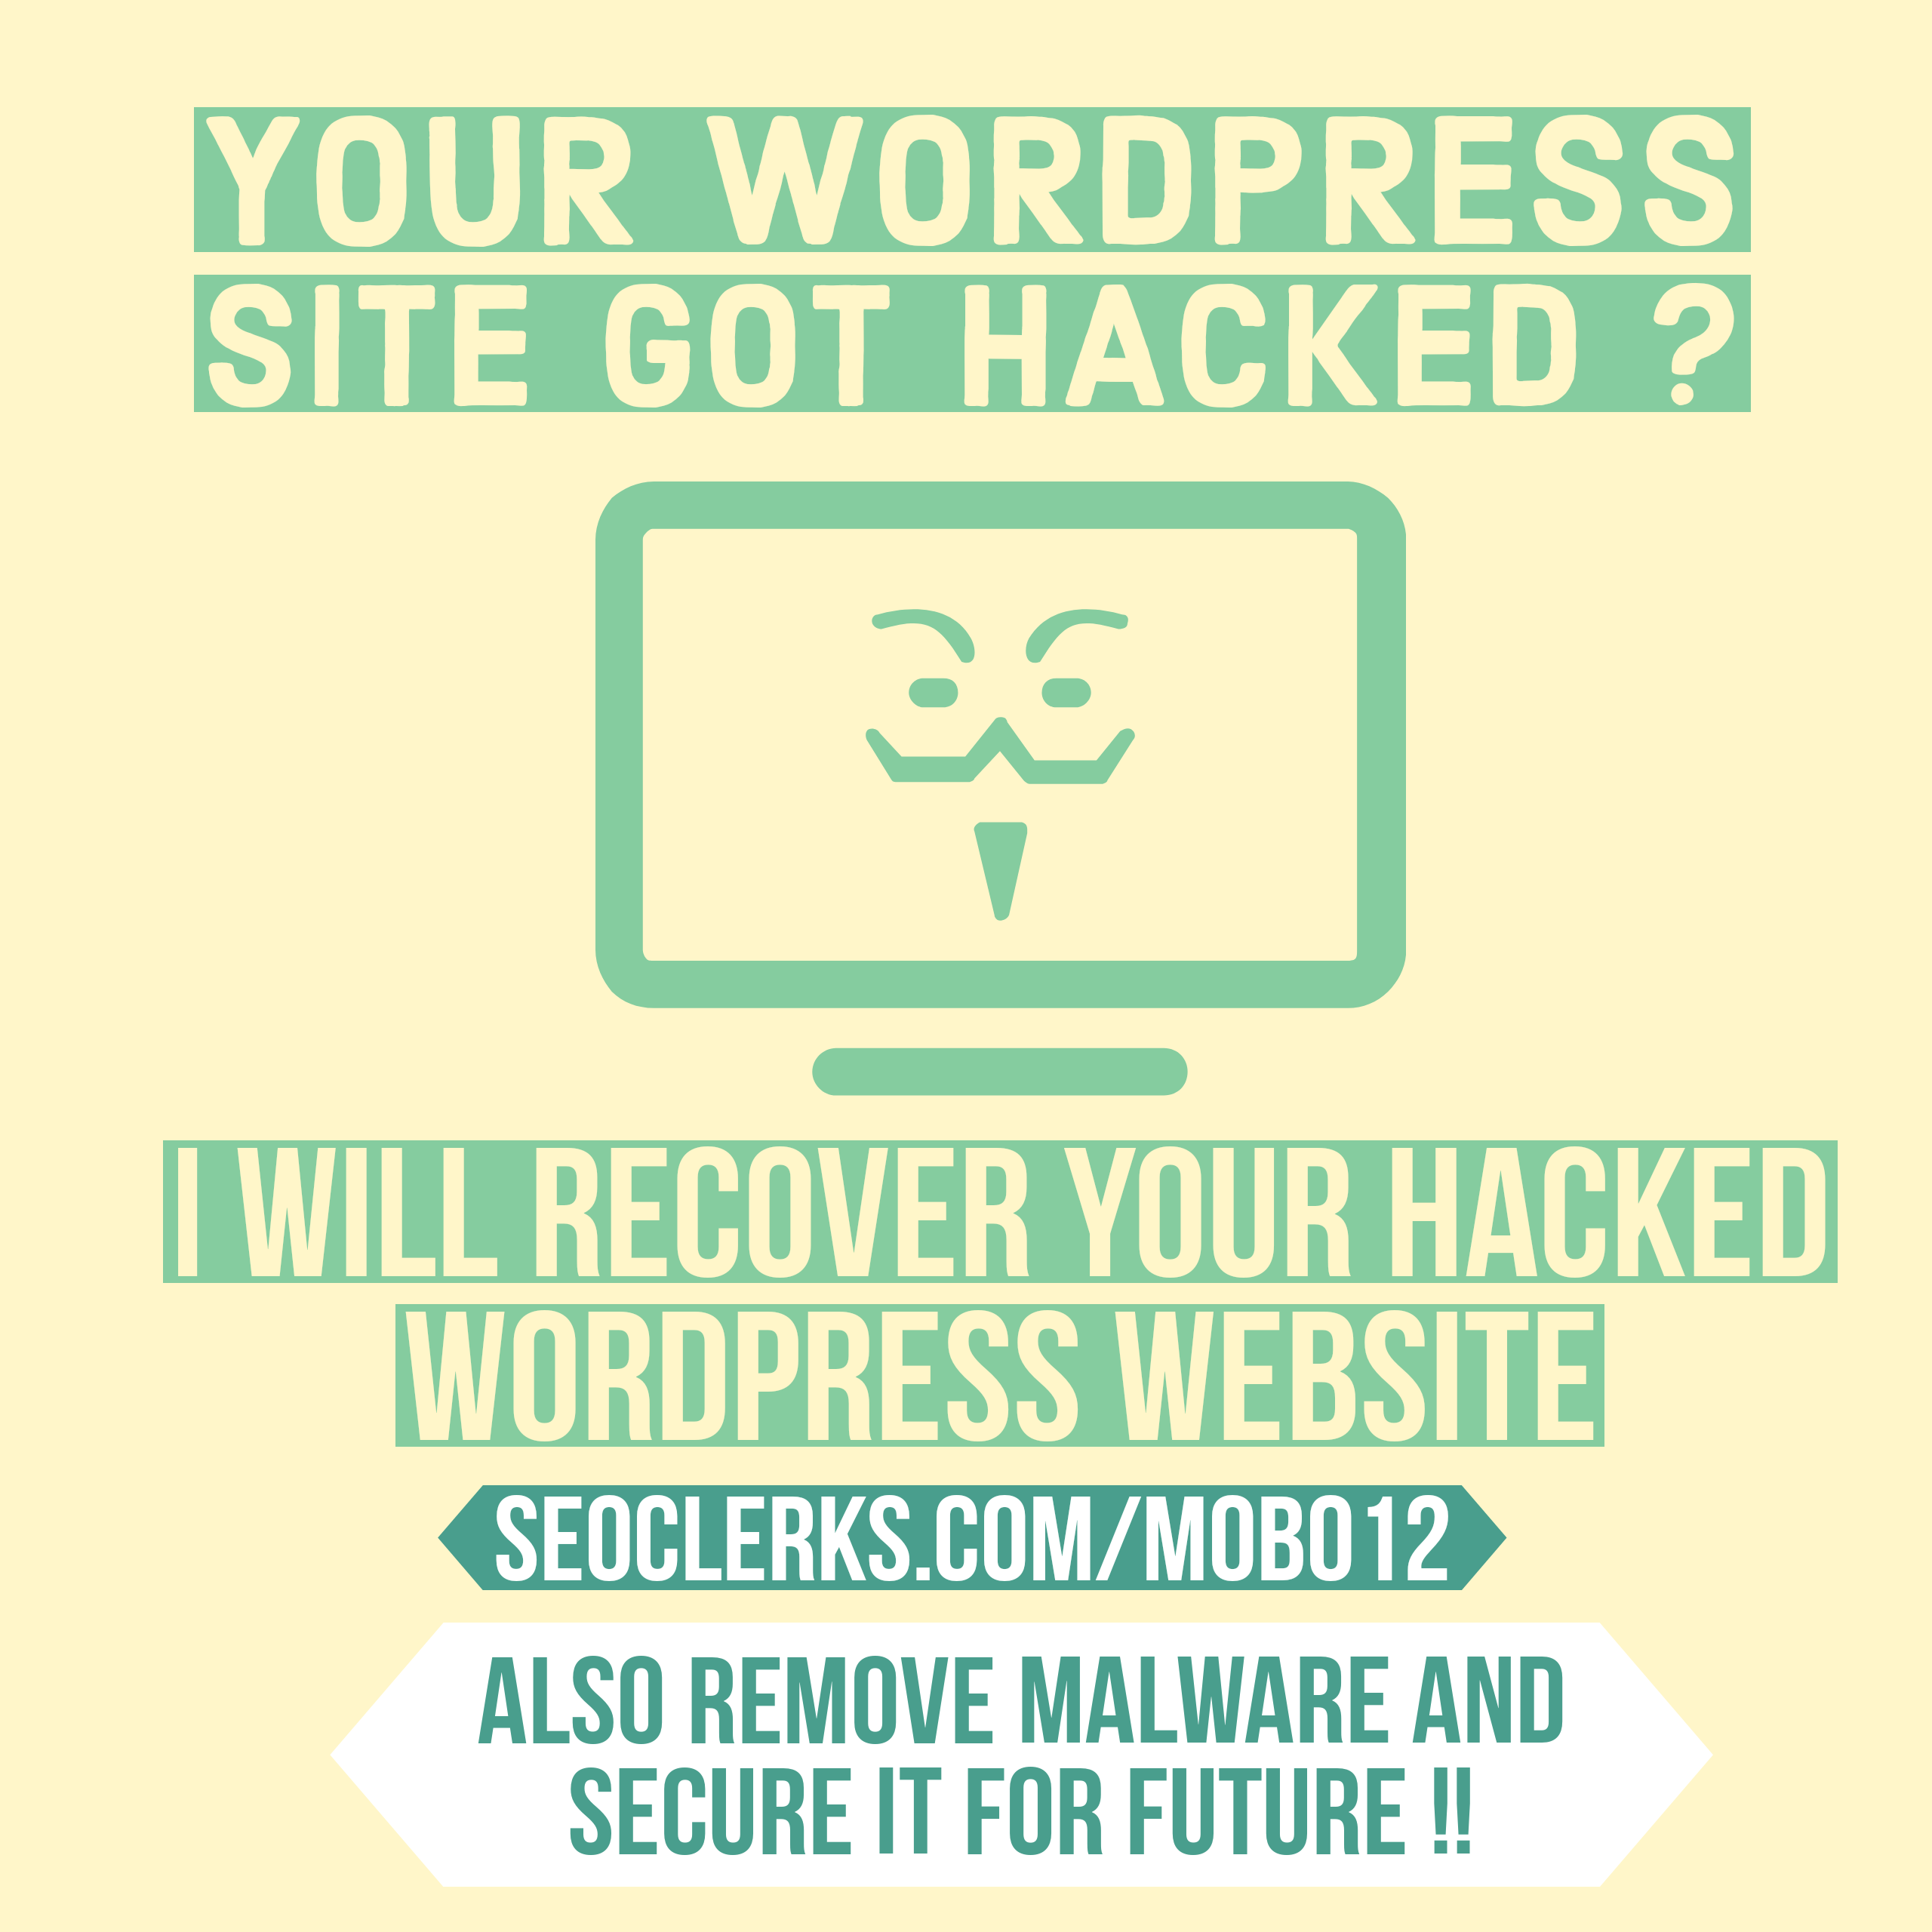 I will recover your hacked wordpress website